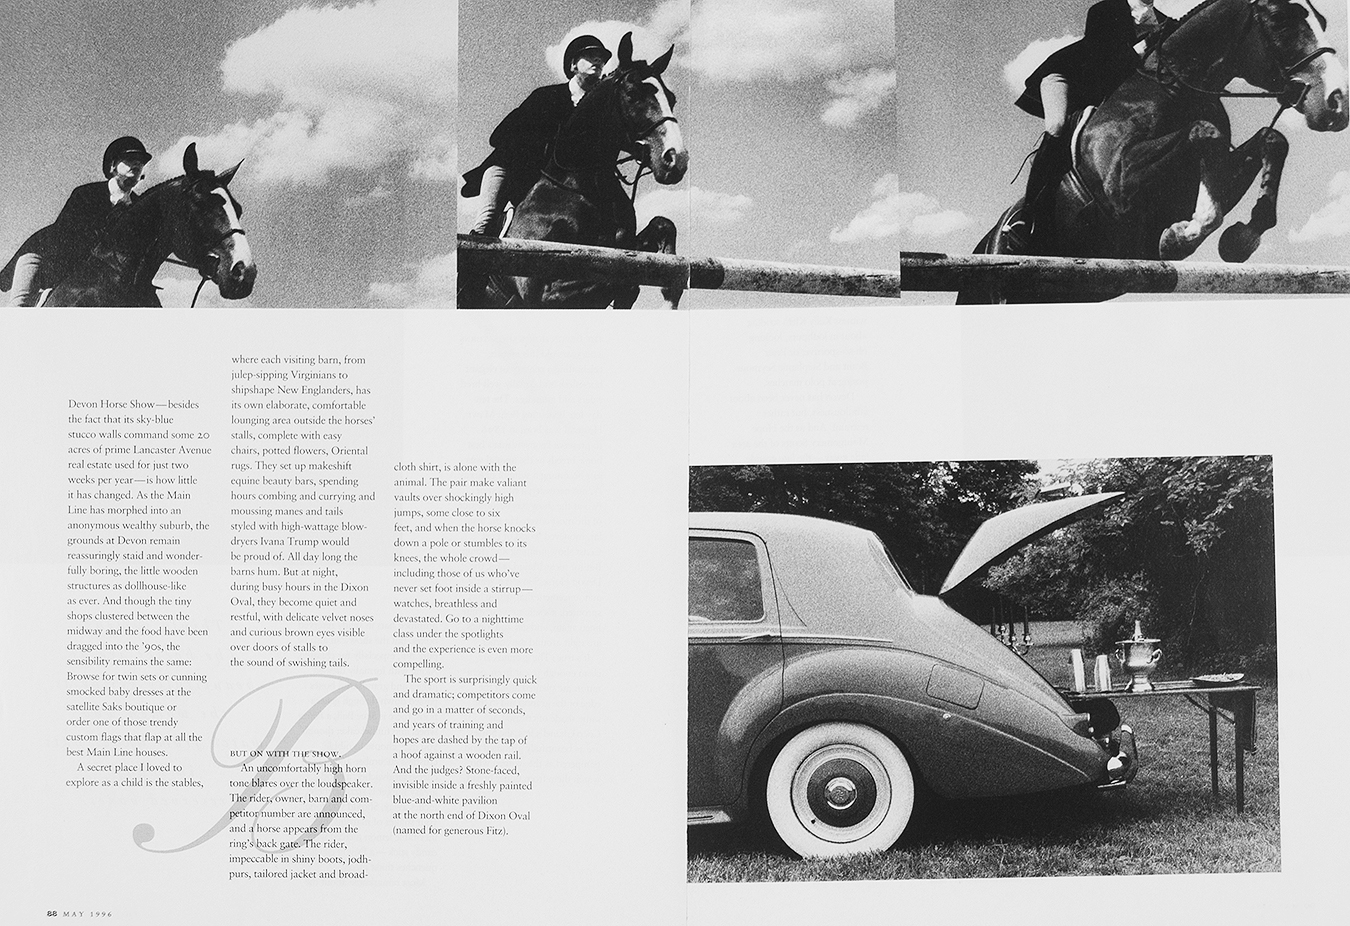 Tony_Ward_photography_devon_horse_show_documentary_Philadelphia_magazine_1996_Amy_Donahue_writer_carriage_climb_rolls_royce_picnic_horse_jumping